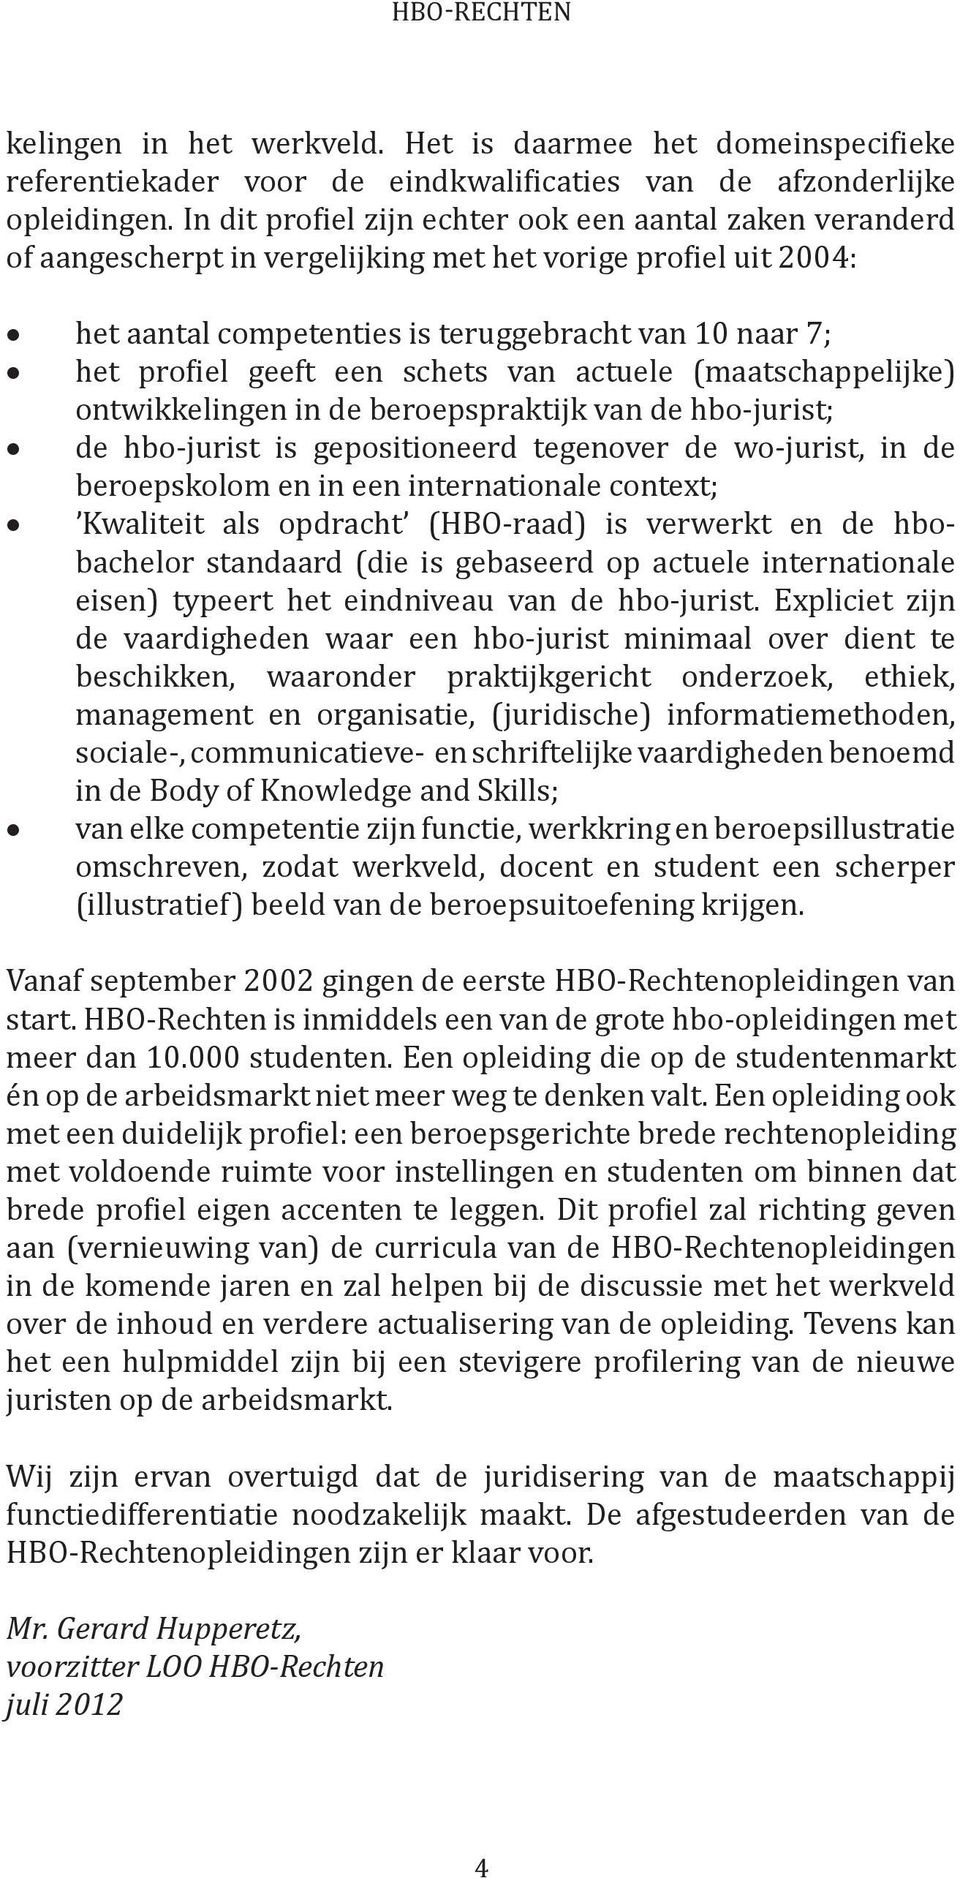 een schets van actuele (maatschappelijke) ontwikkelingen in de beroepspraktijk van de hbo-jurist; de hbo-jurist is gepositioneerd tegenover de wo-jurist, in de beroepskolom en in een internationale